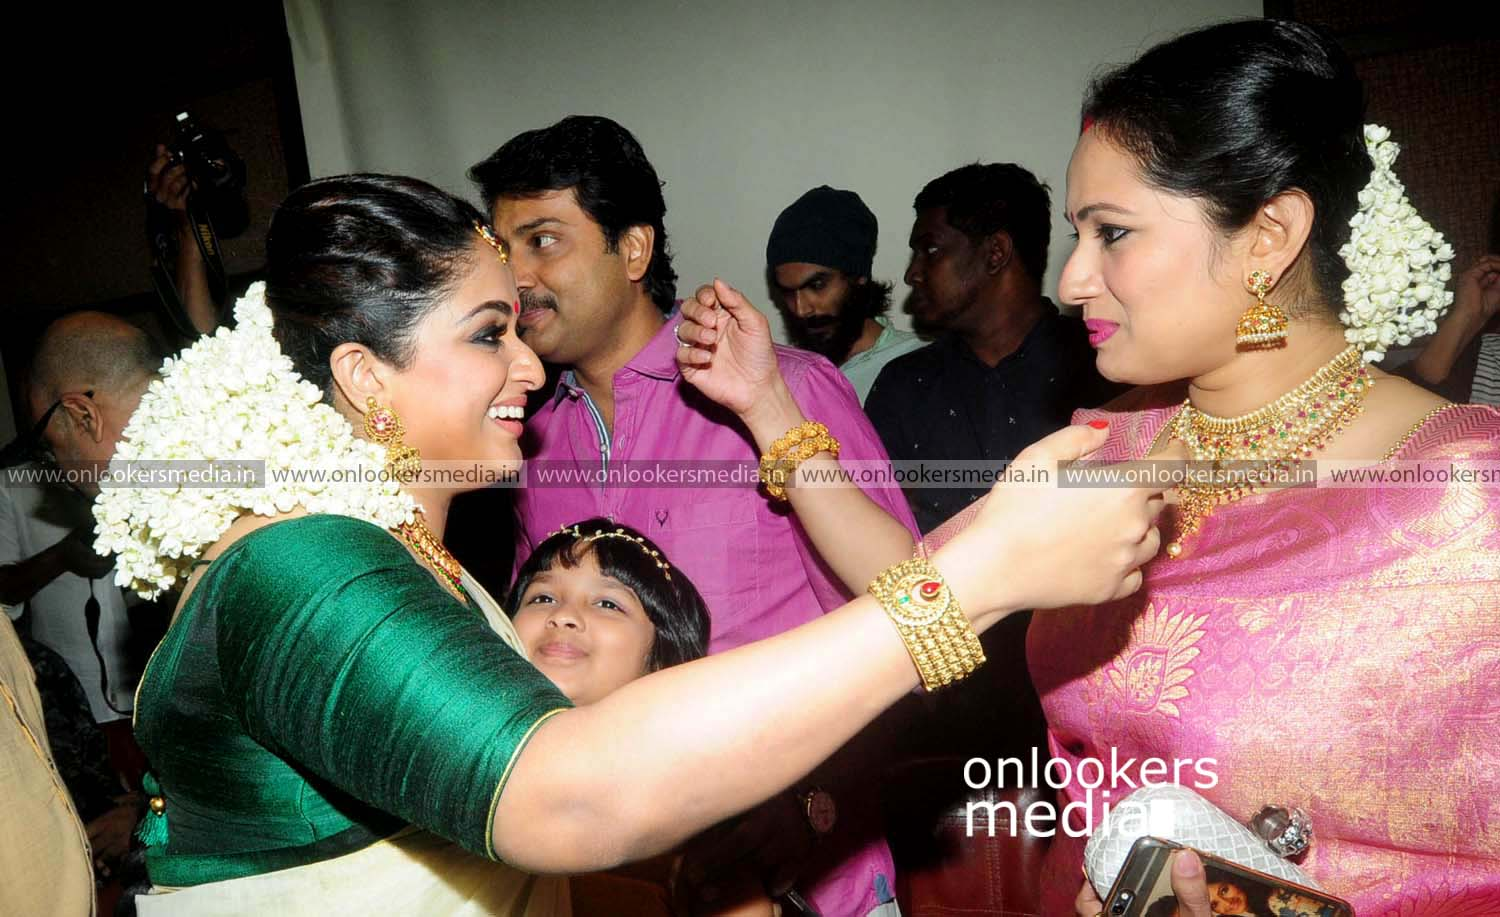 http://onlookersmedia.in/wp-content/uploads/2016/11/Dileep-Kavya-Madhavan-Wedding-Stills-Photos-9.jpg